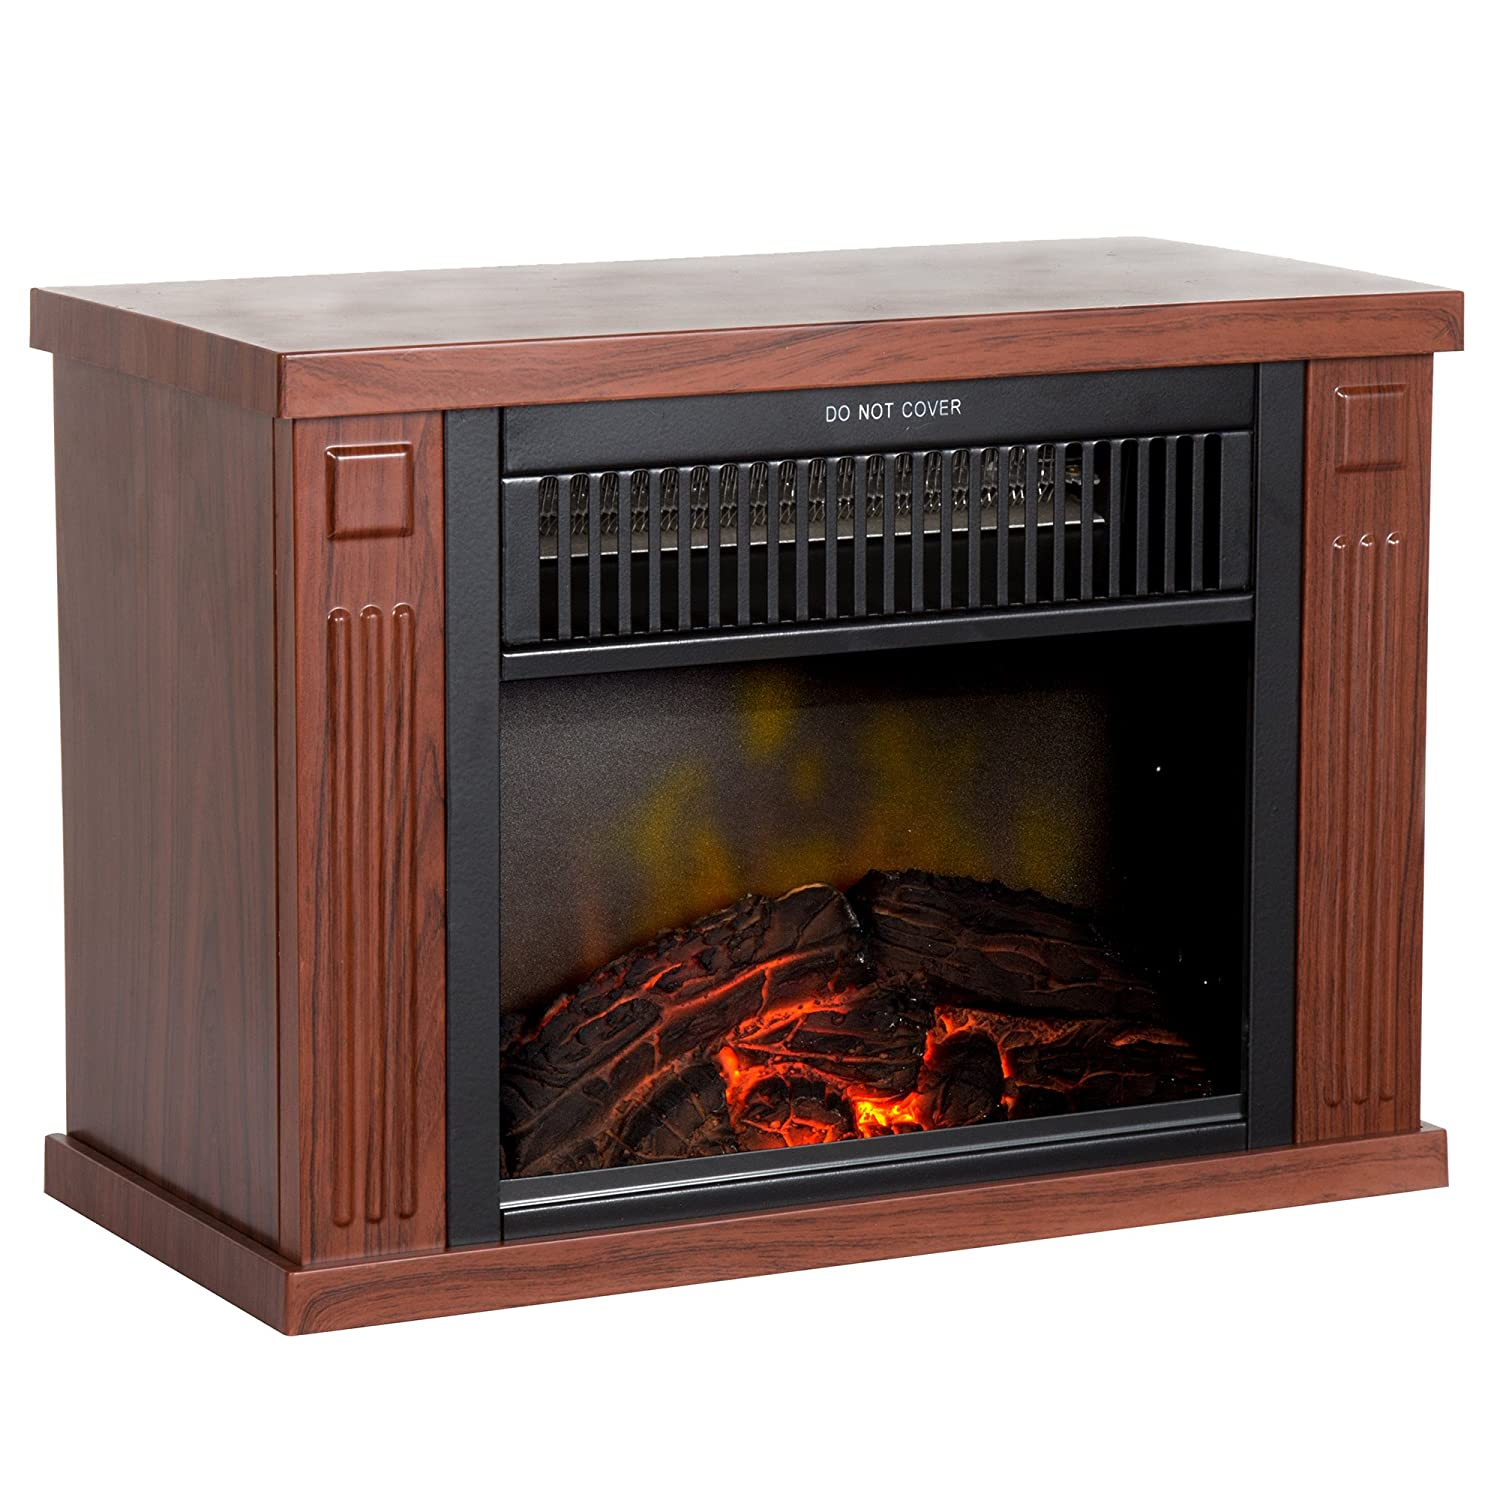 Northwest 80-EF480-B Portable Mini Electric Fireplace Heater, 13 ...